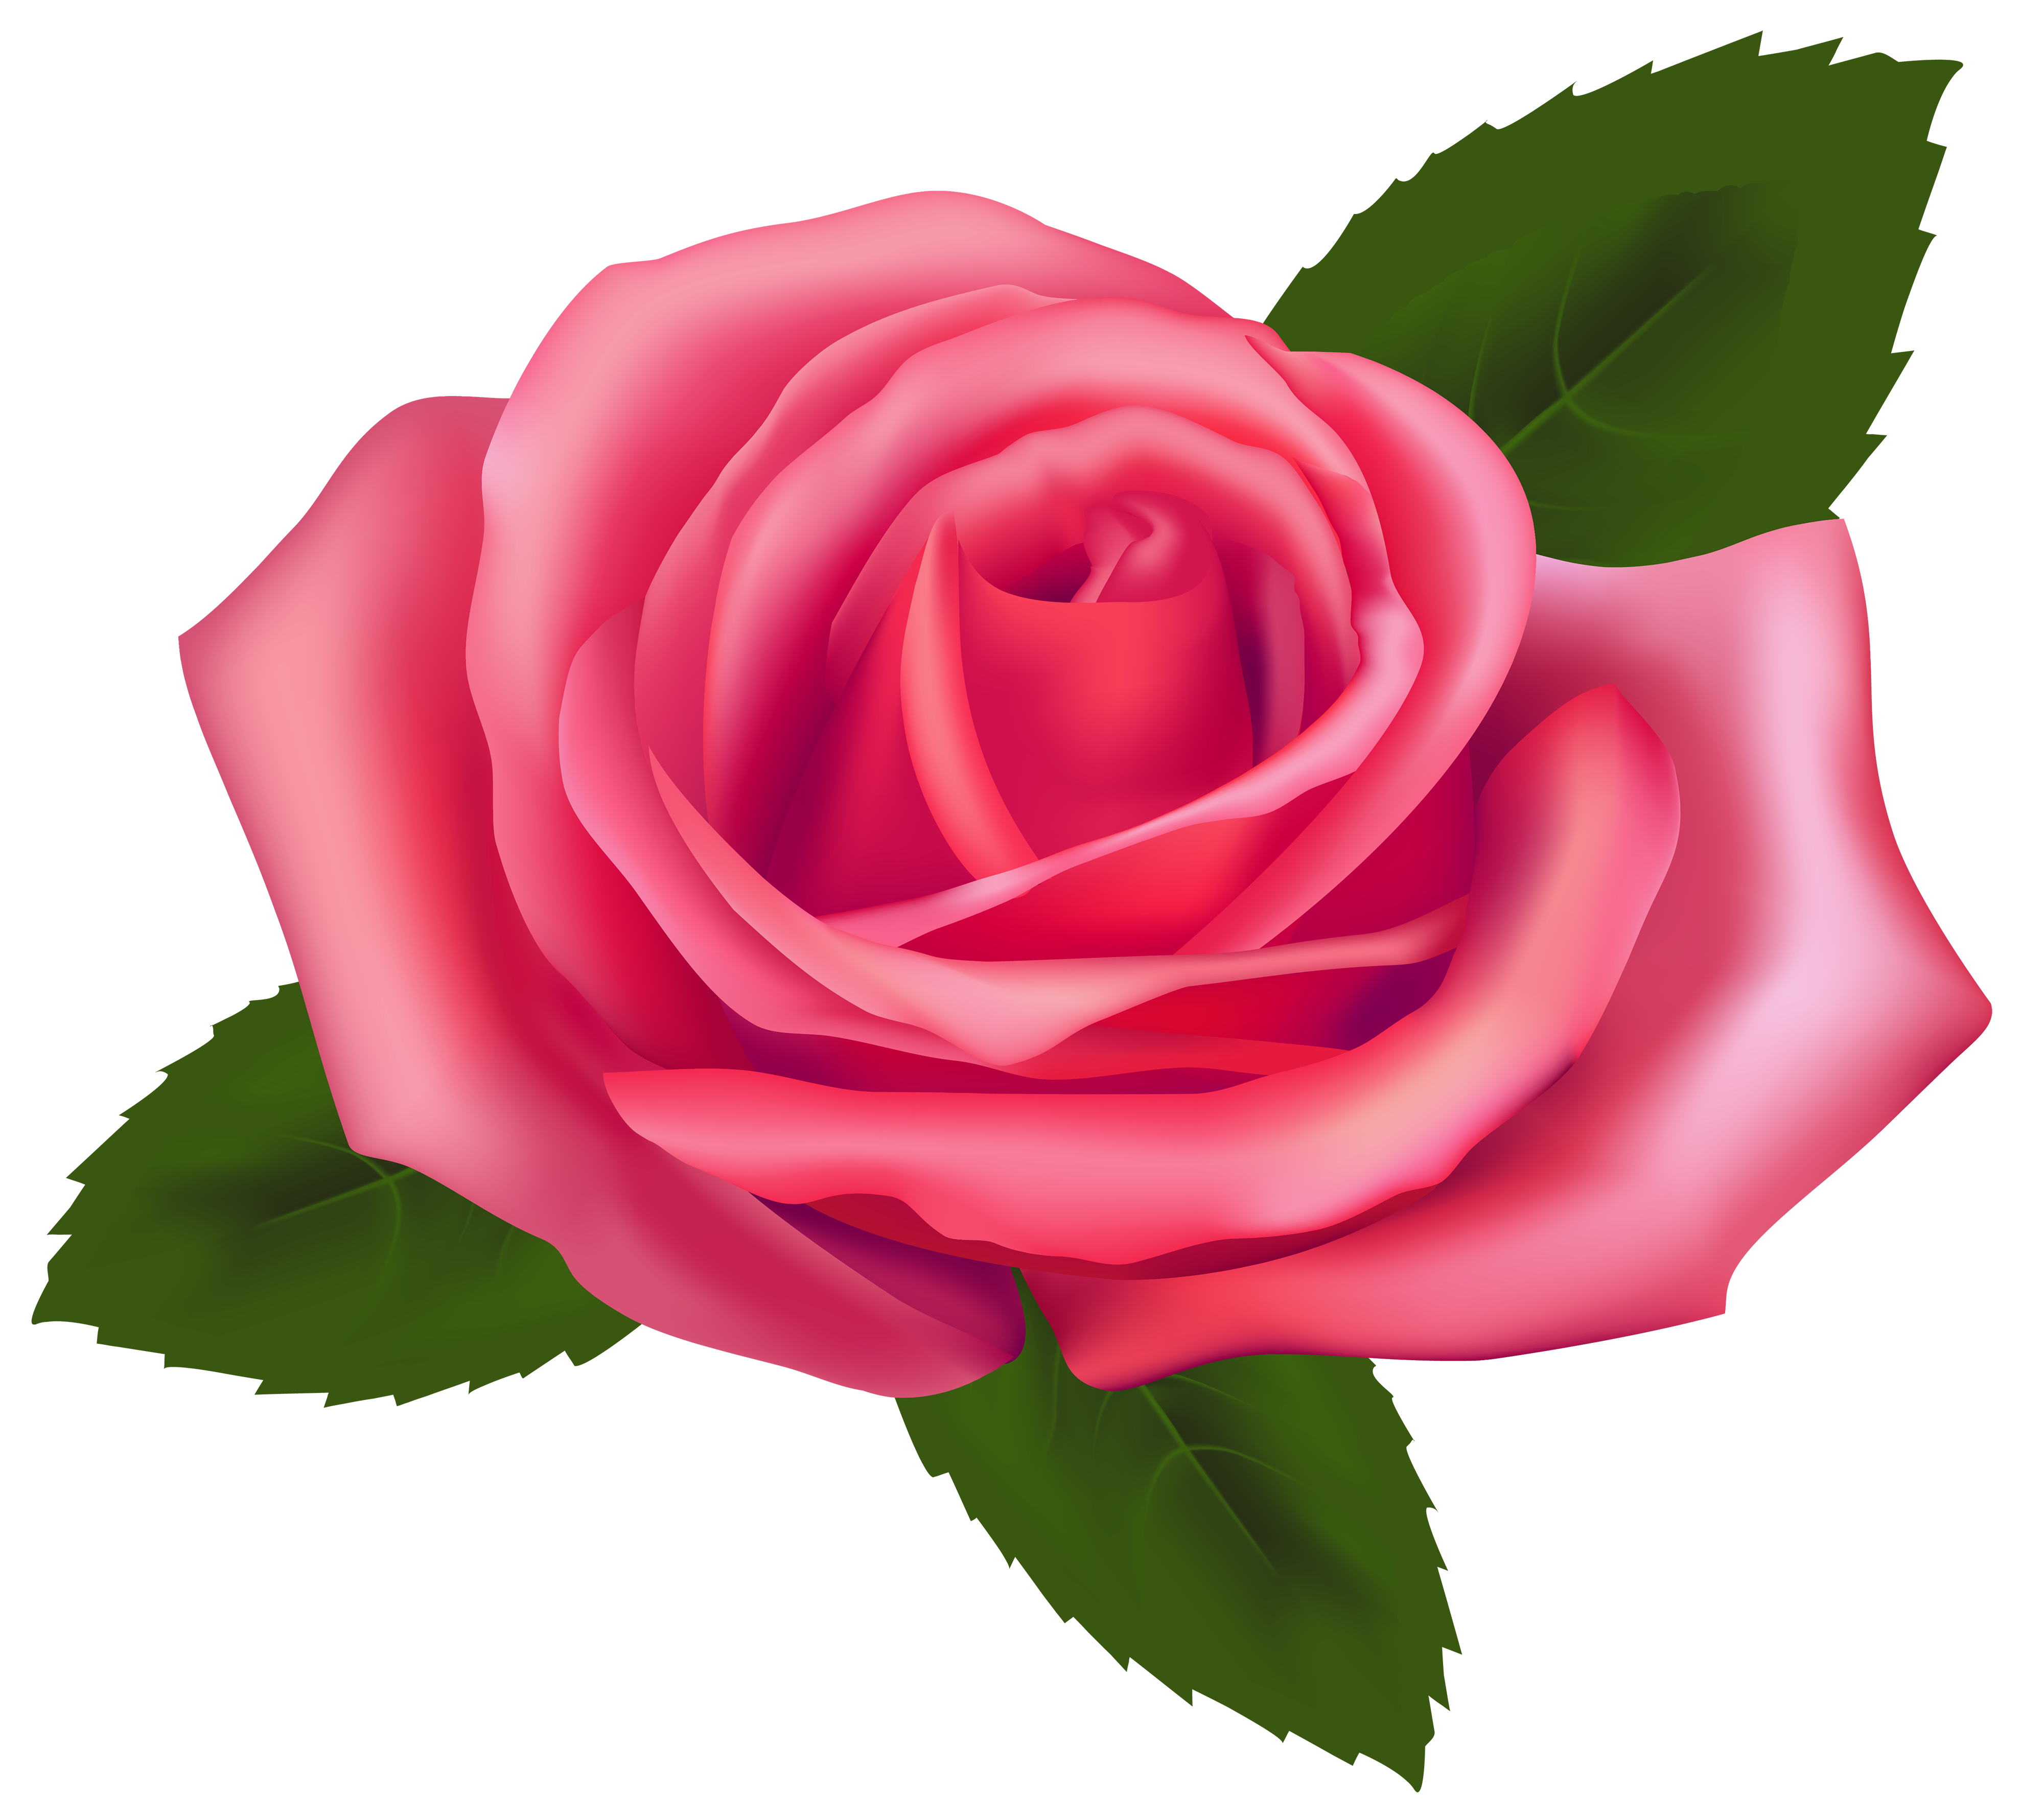 Pink Rose clipart #12